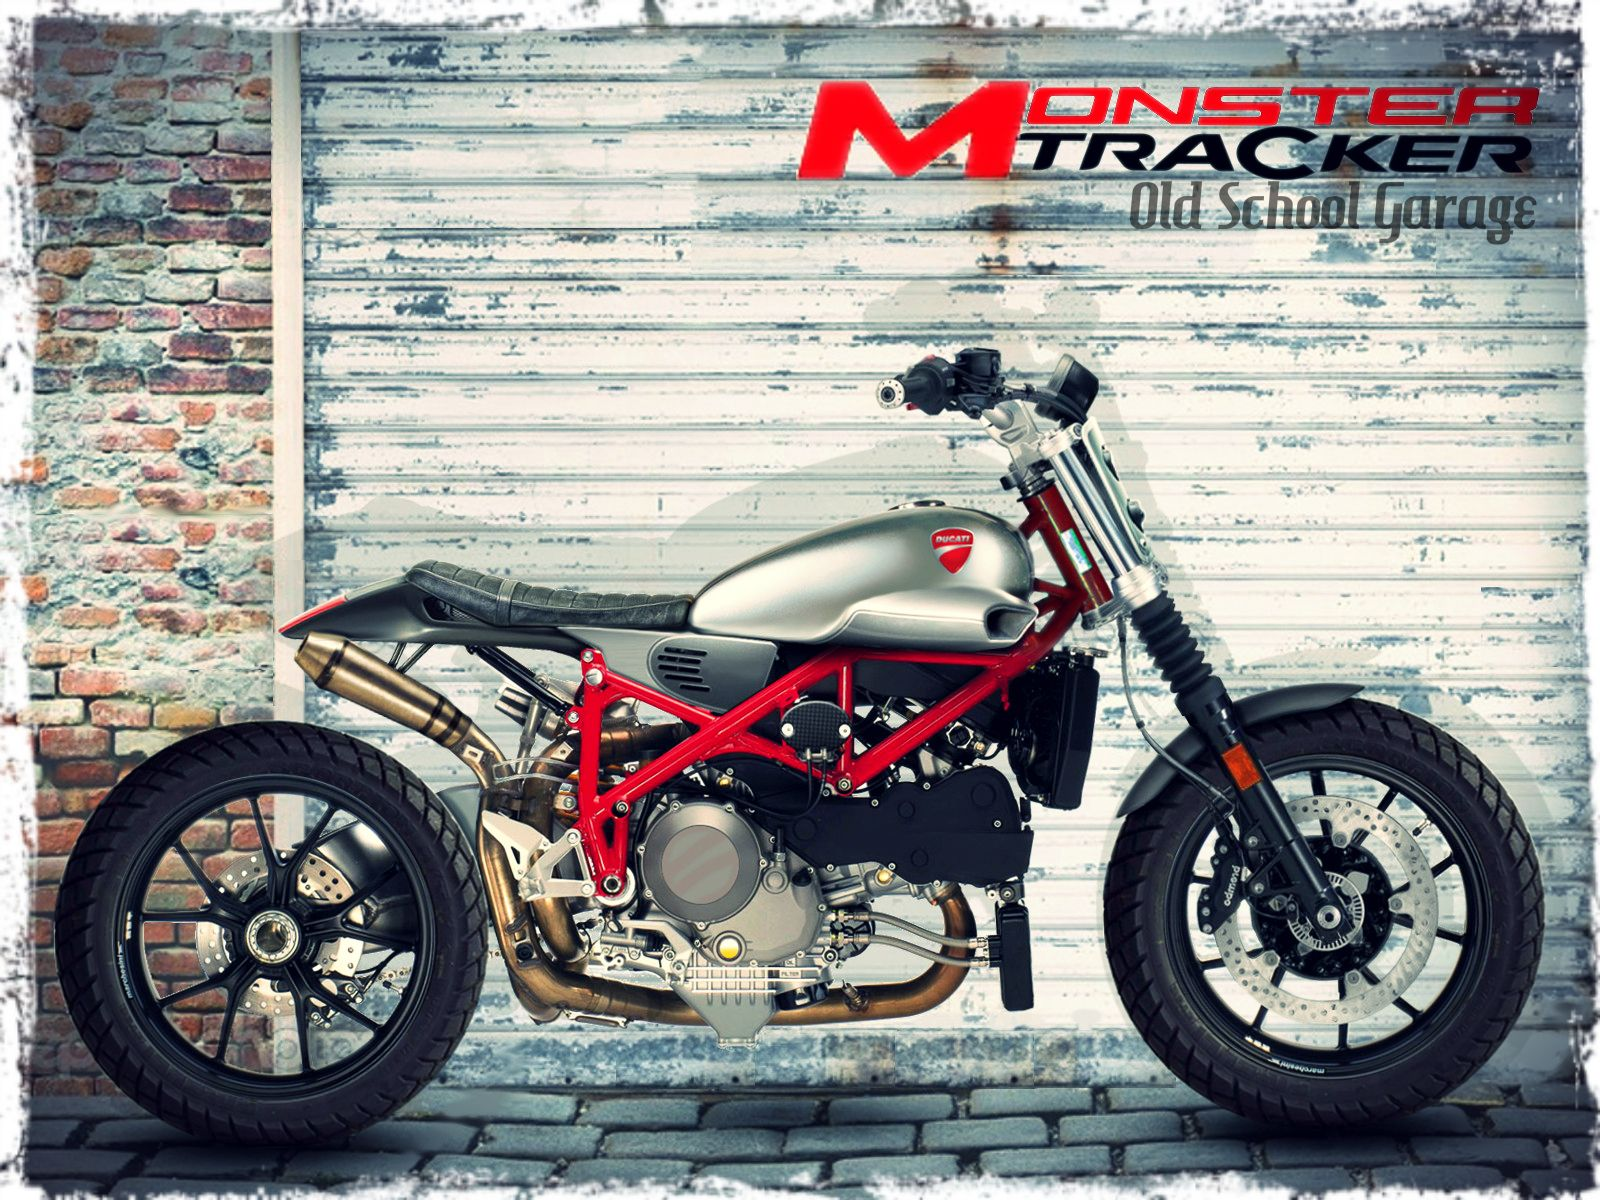 DUCATIMONSTERSTREET TRACKERDUCATI SCRAMBLERSPECIAL MOTORCYCLESOLD SCHOOL